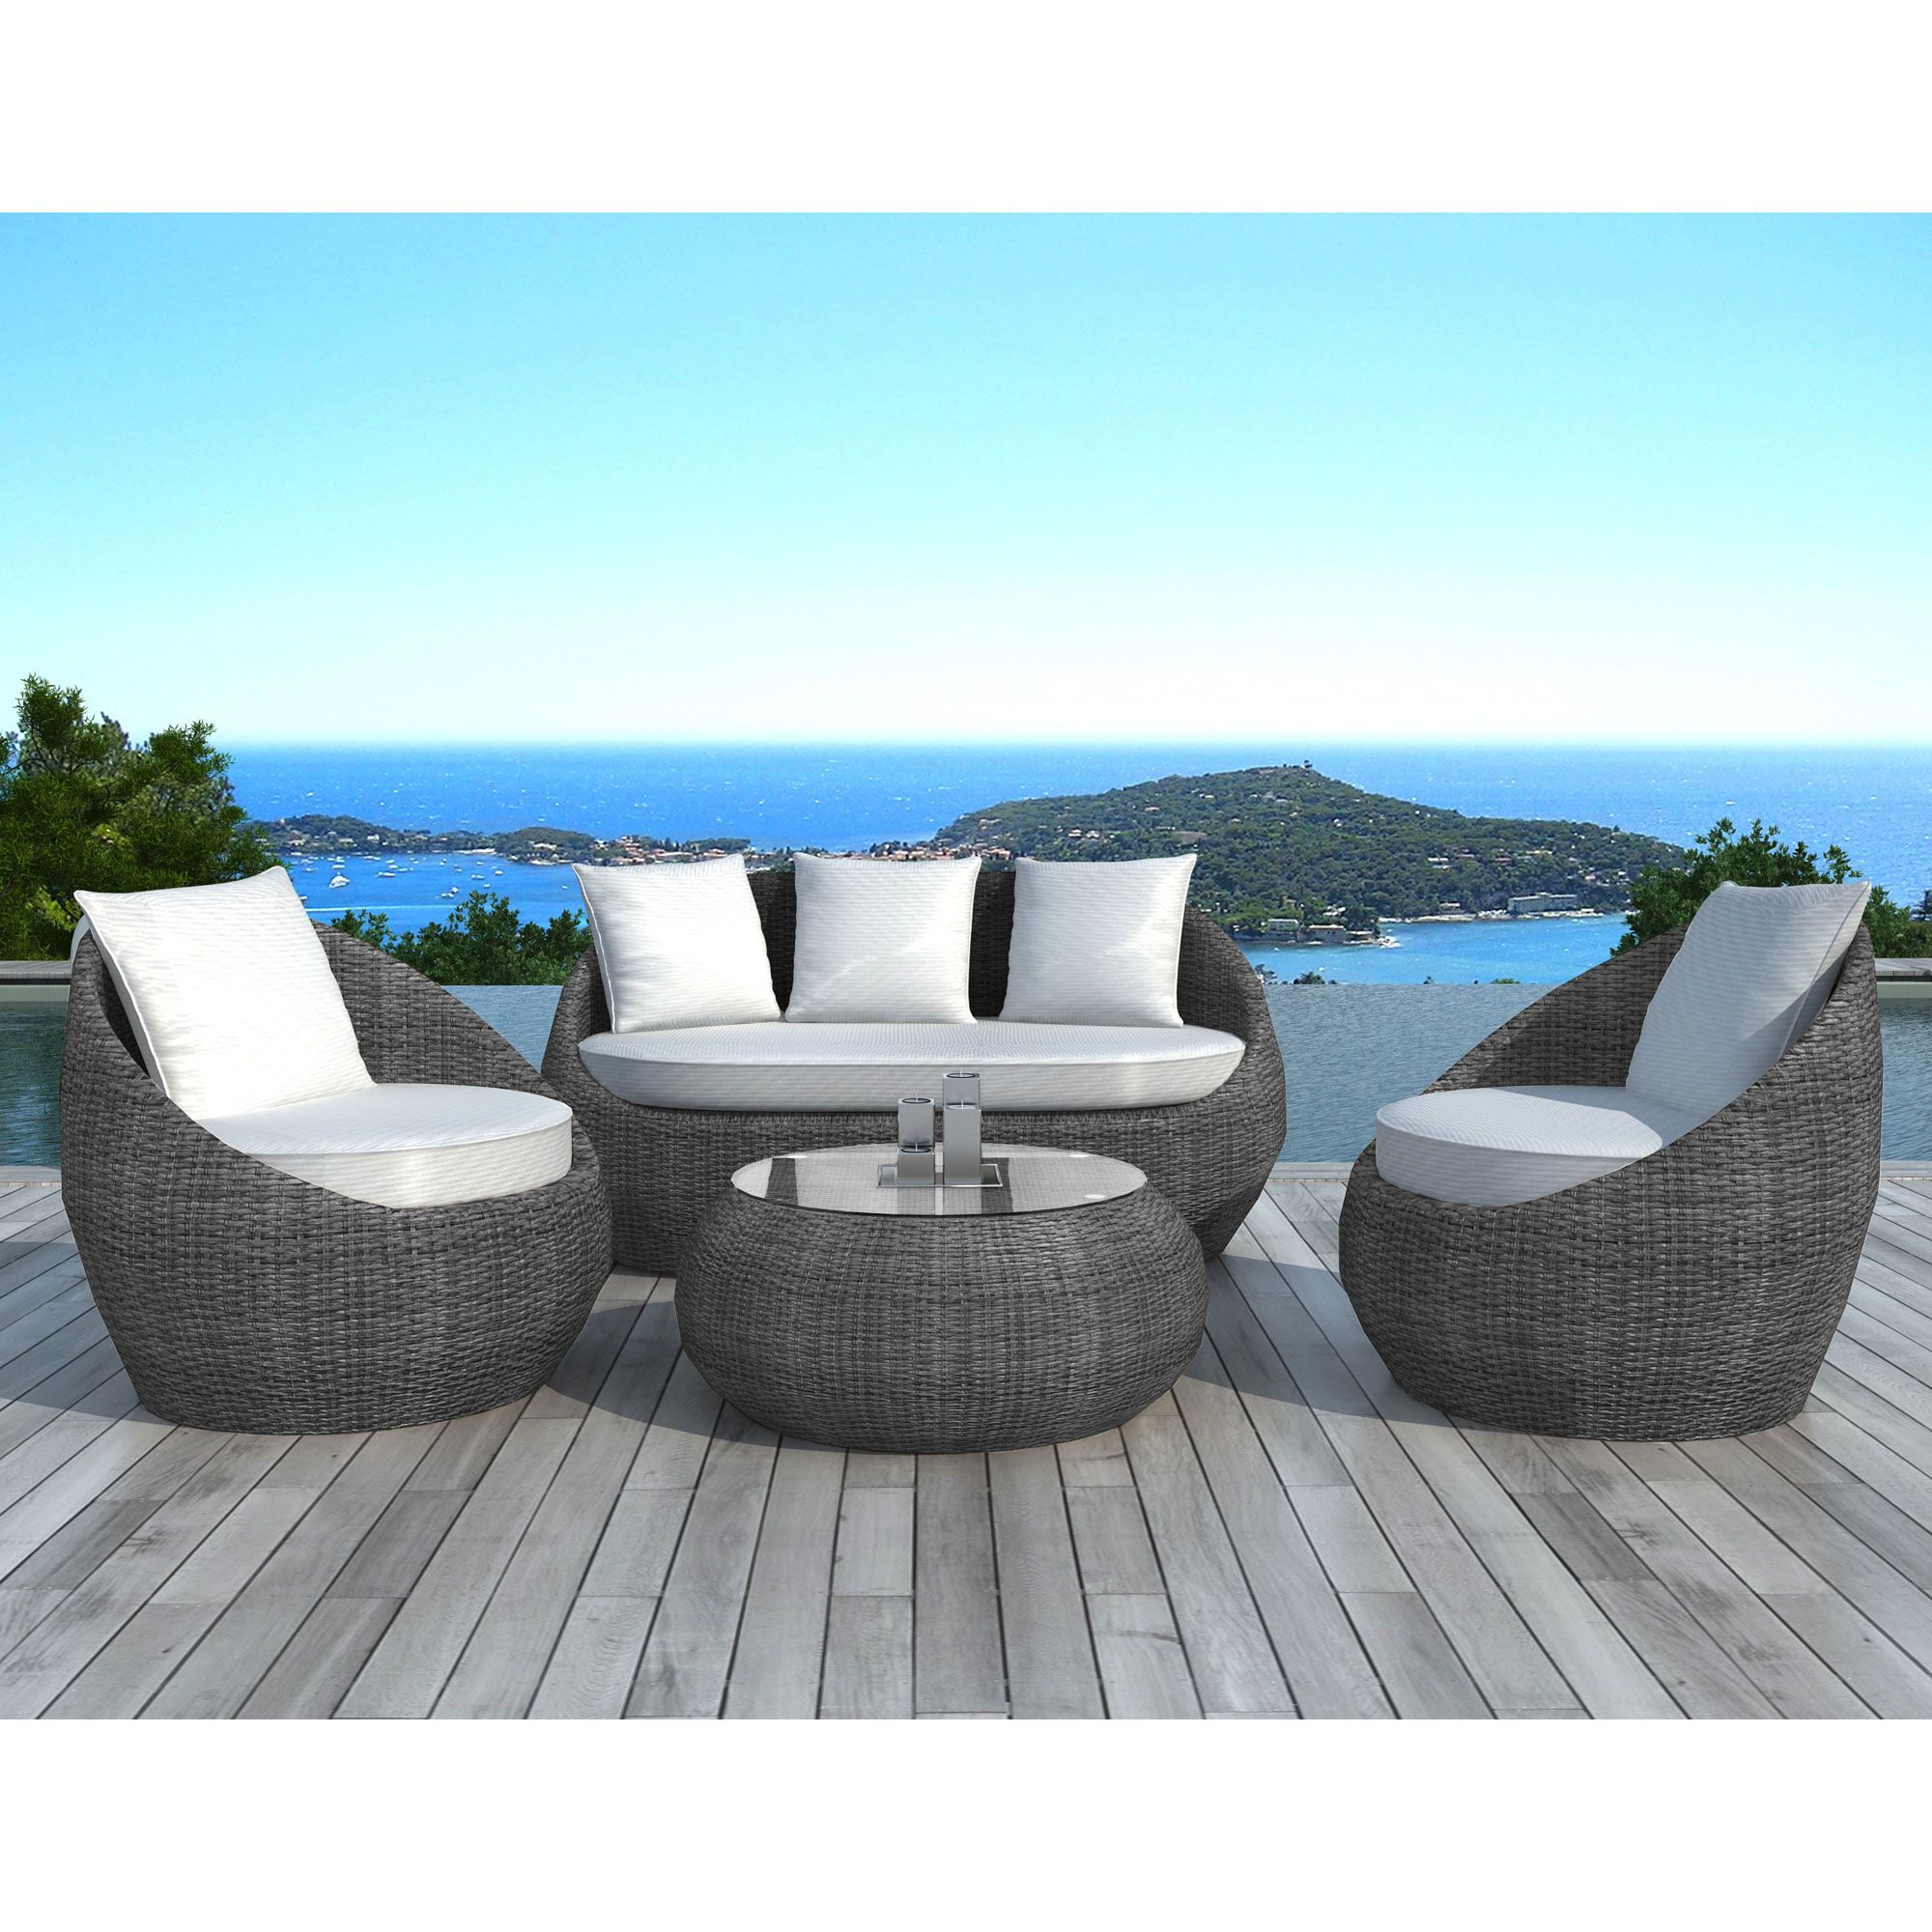 Salon Rotin Pas Cher Épinglé Par Ga Ol Sur Balcon Outdoor Furniture Sets Outdoor